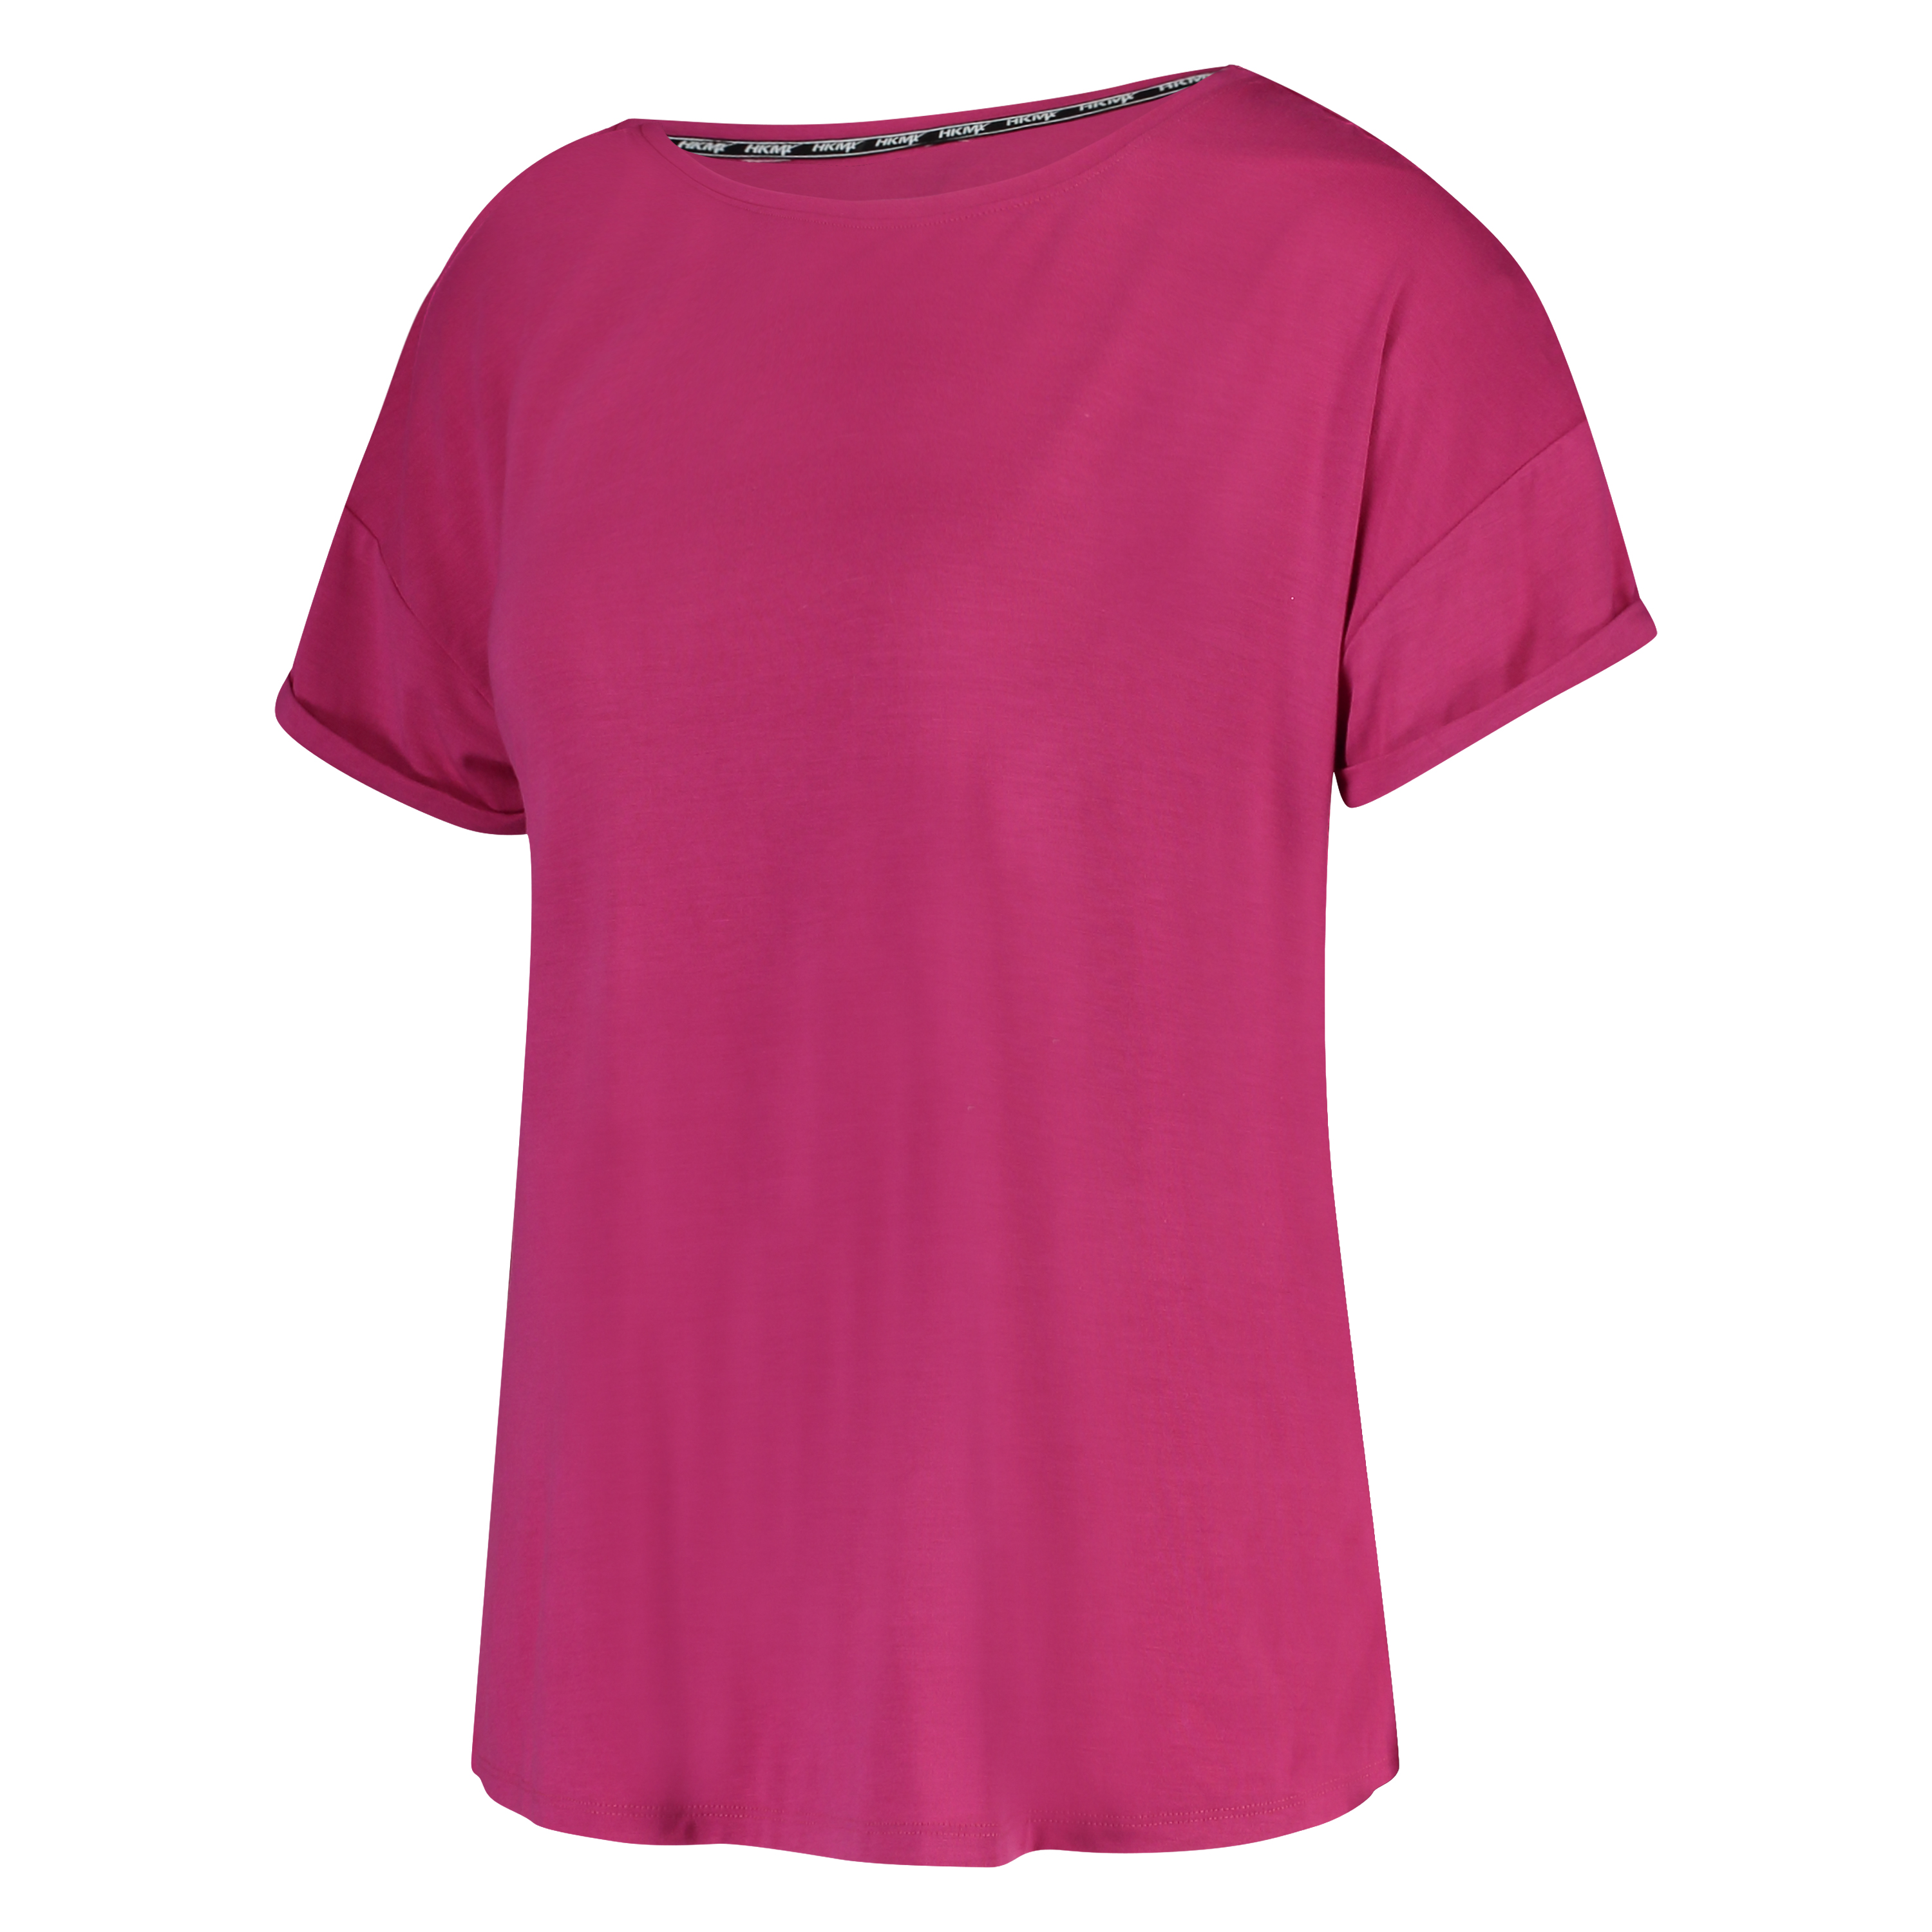 HKMX Sport top tee mesh tape, Roze, main